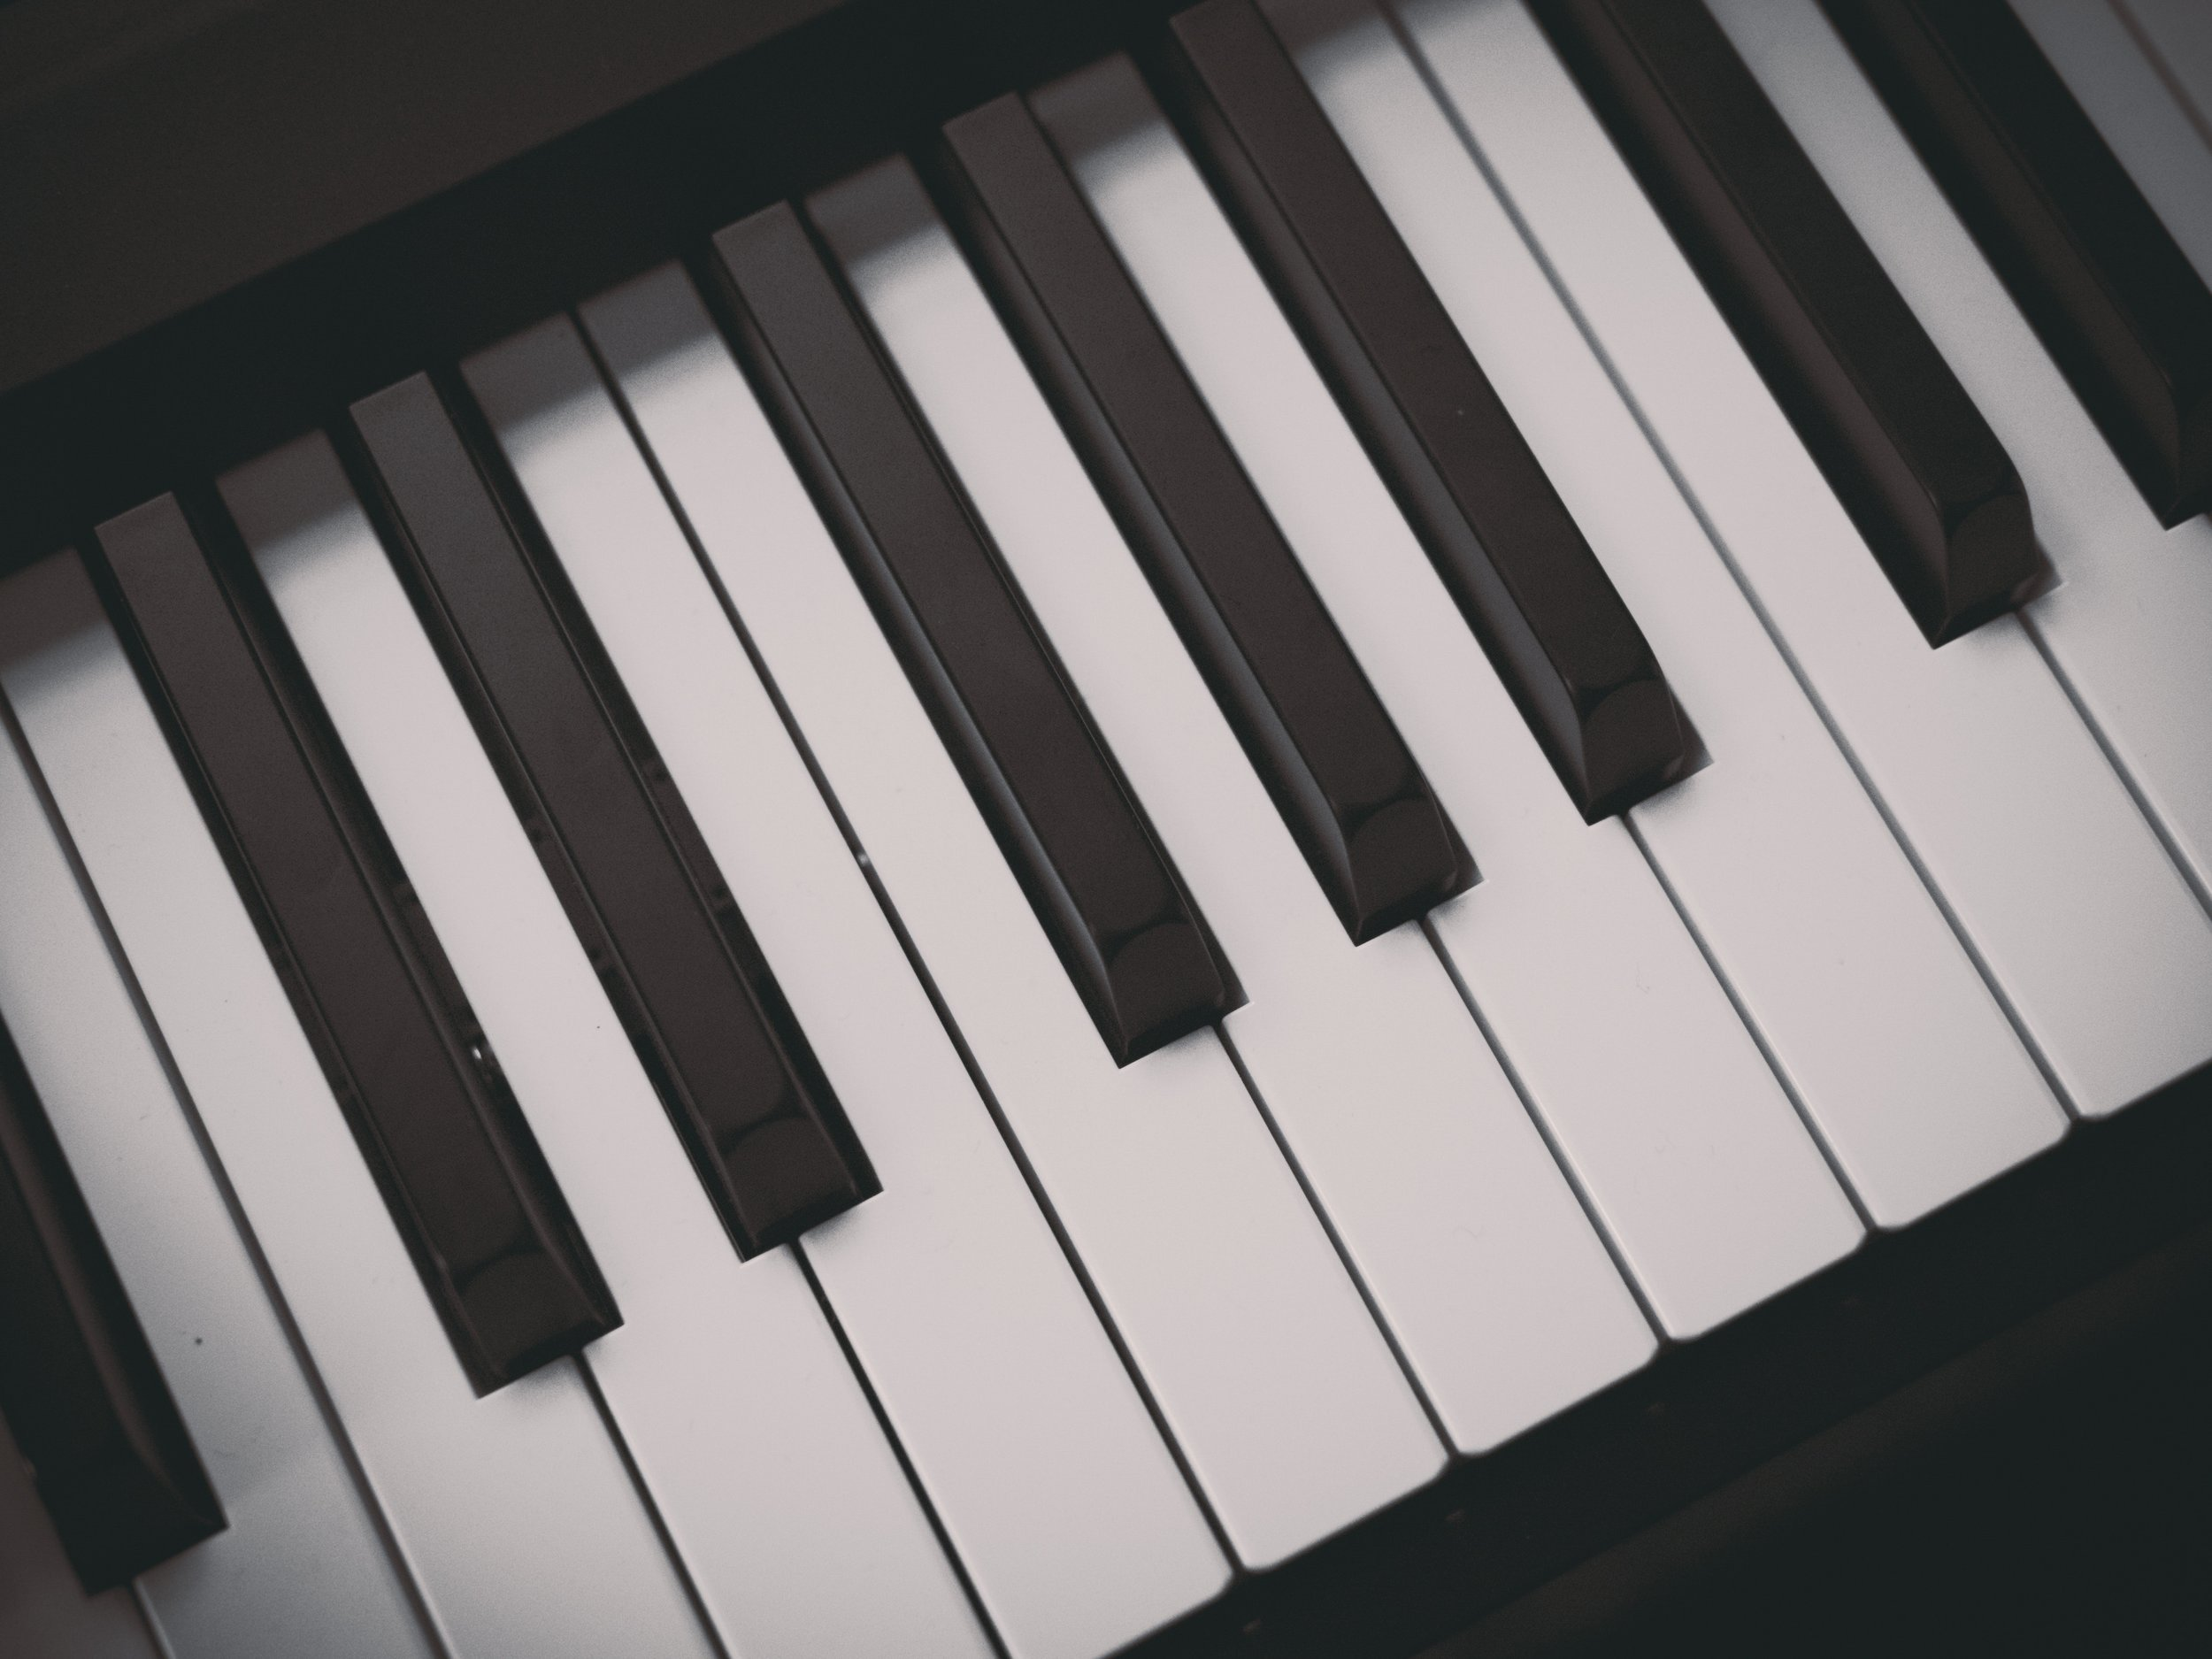 black-and-white-keyboard-musical-instrument-258805 (1).jpg